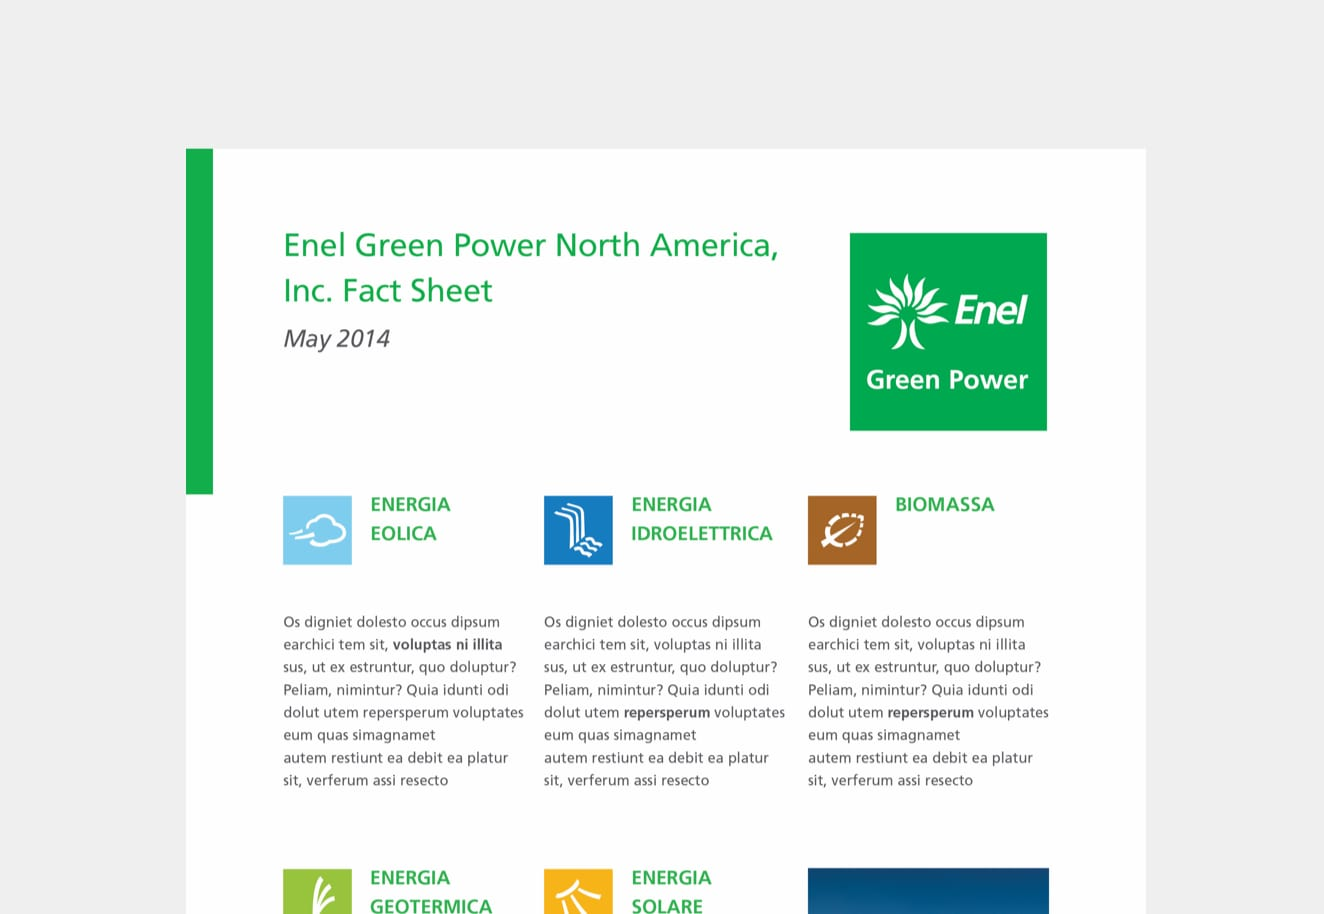 Our brand strategy agency Luther Dsgn develops the internal communication strategy for Enel Green Power